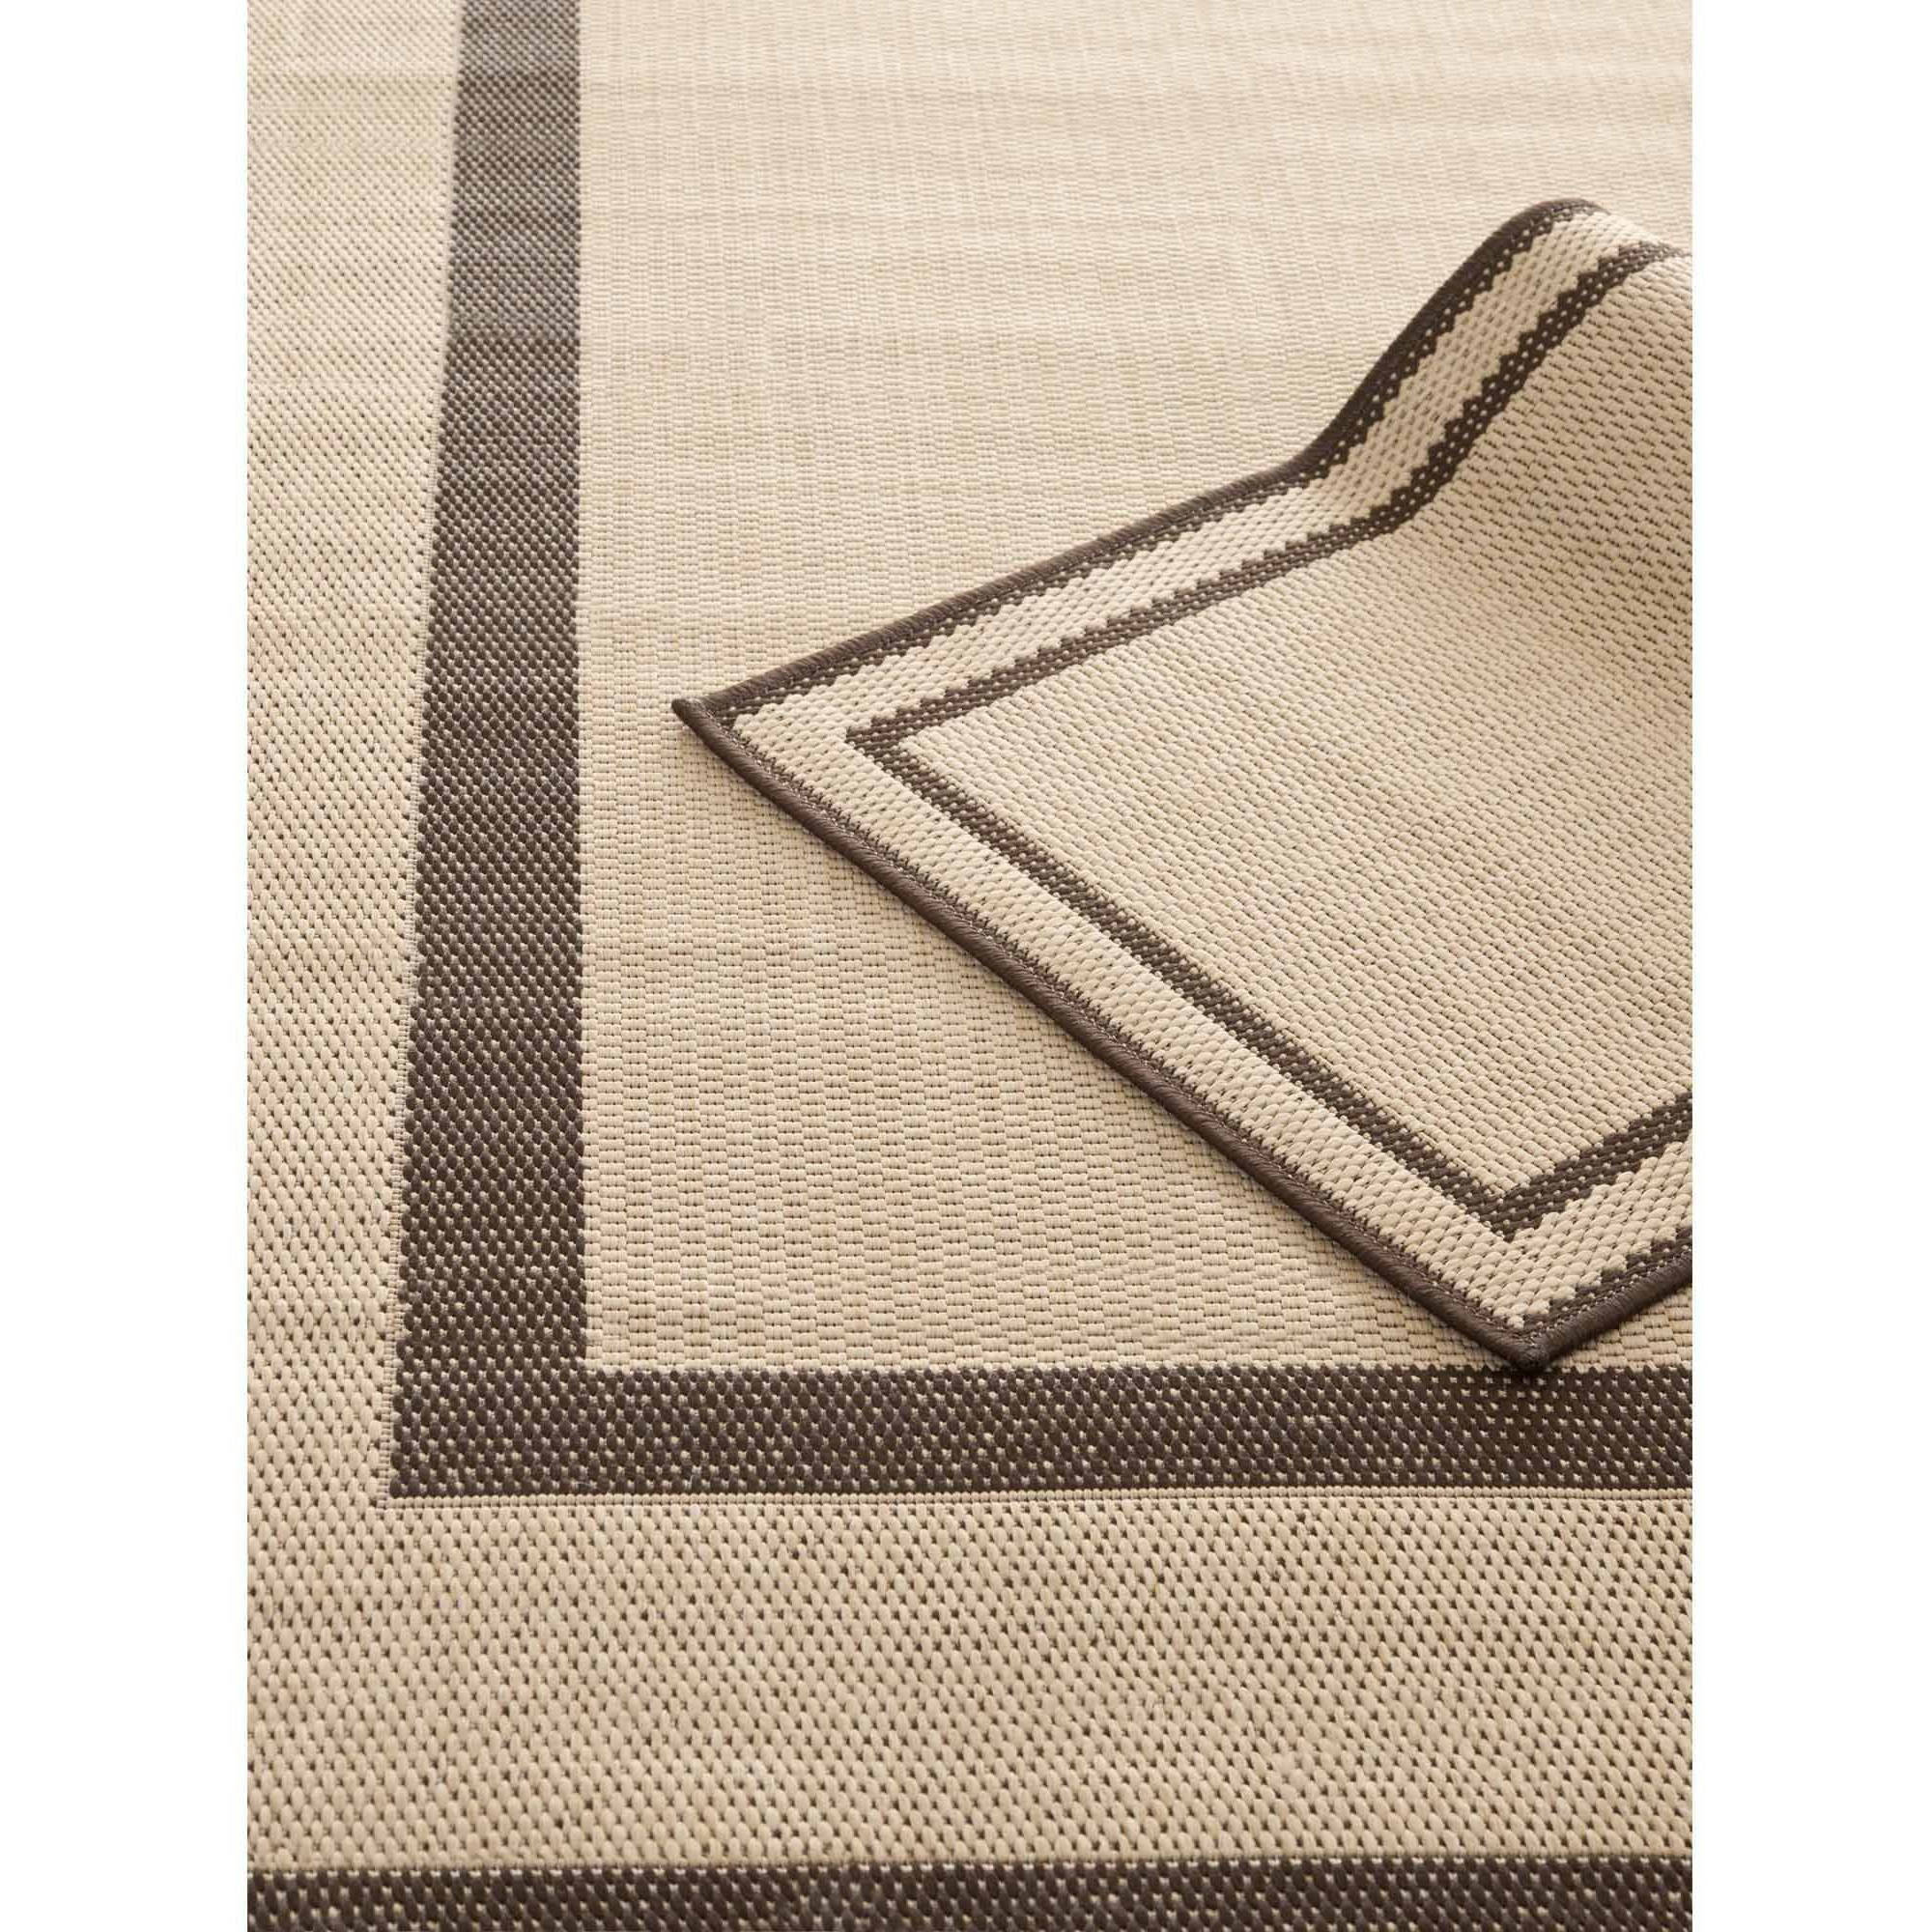 """Safavieh Courtyard Andrea Power-Loomed 6'6"""" x 9'6"""" and 1'8"""" x 2'8"""" Indoor/Outdoor Area Rug, Set of 2, Natural/Chocolate"""